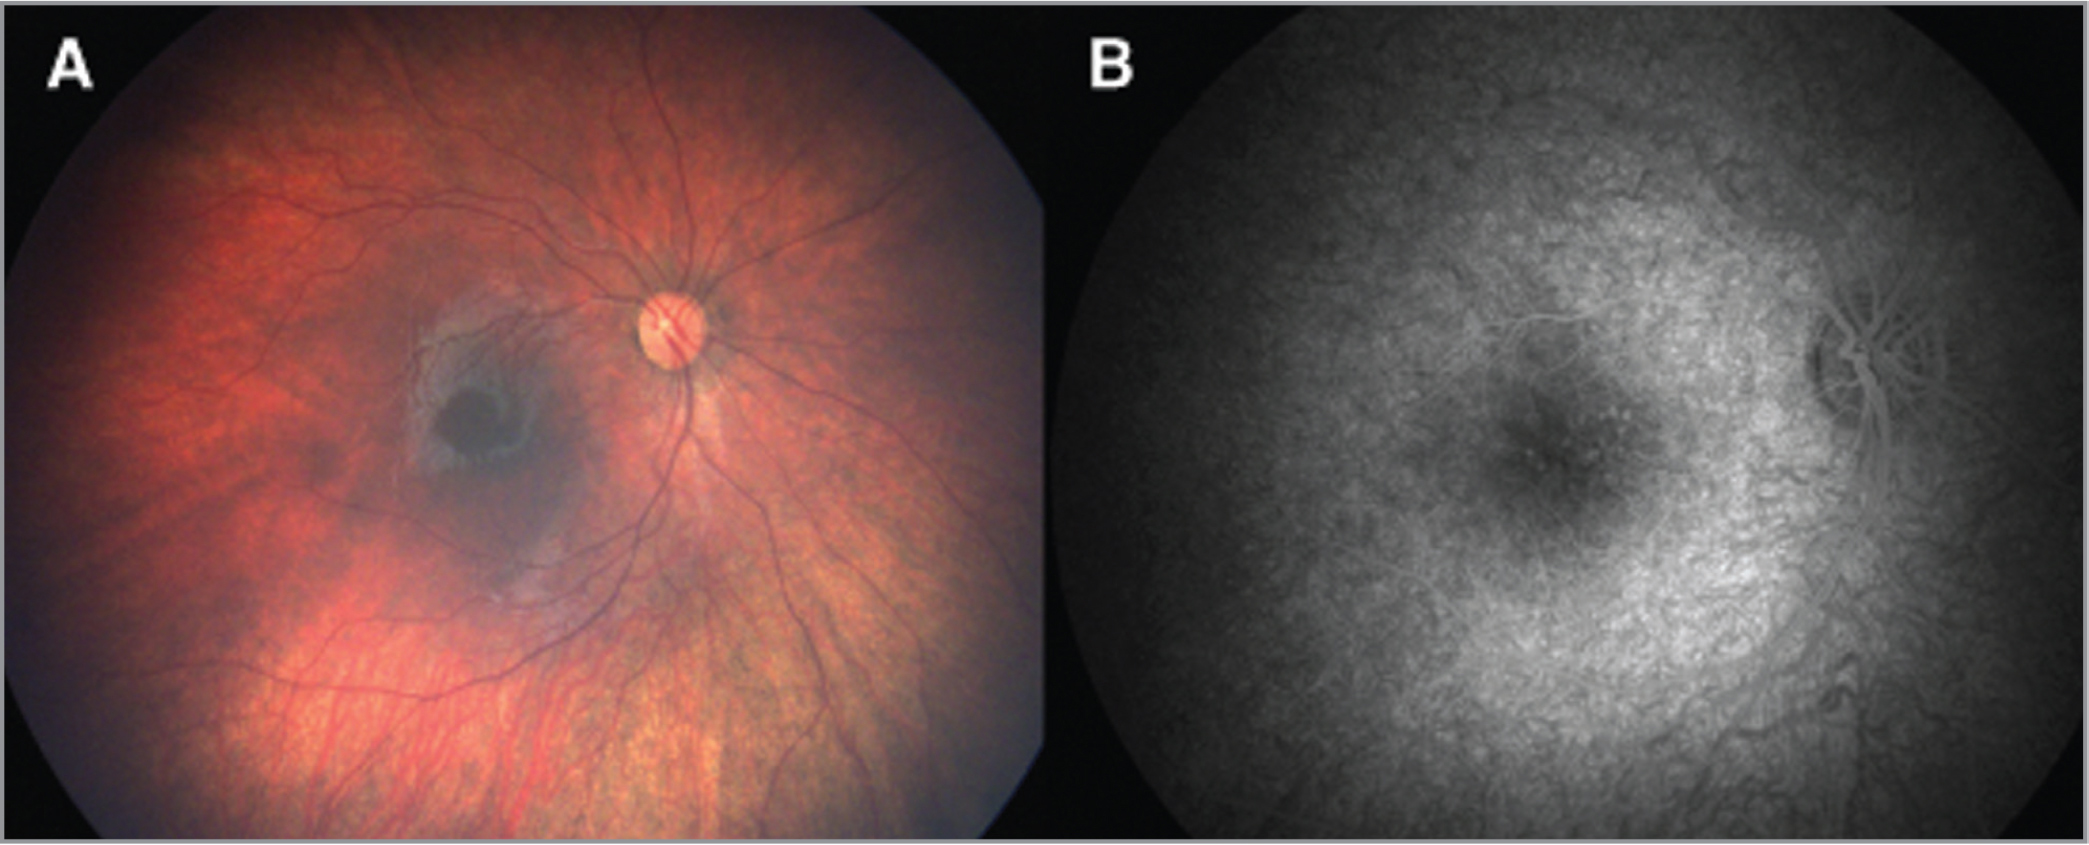 Patient 1. Wide-angle fundus and fluorescein angiography images obtained from an infant with congenital Zika syndrome. (A) Unremarkable fundus in the right eye (OD). (B) Window defects in the macula OD.